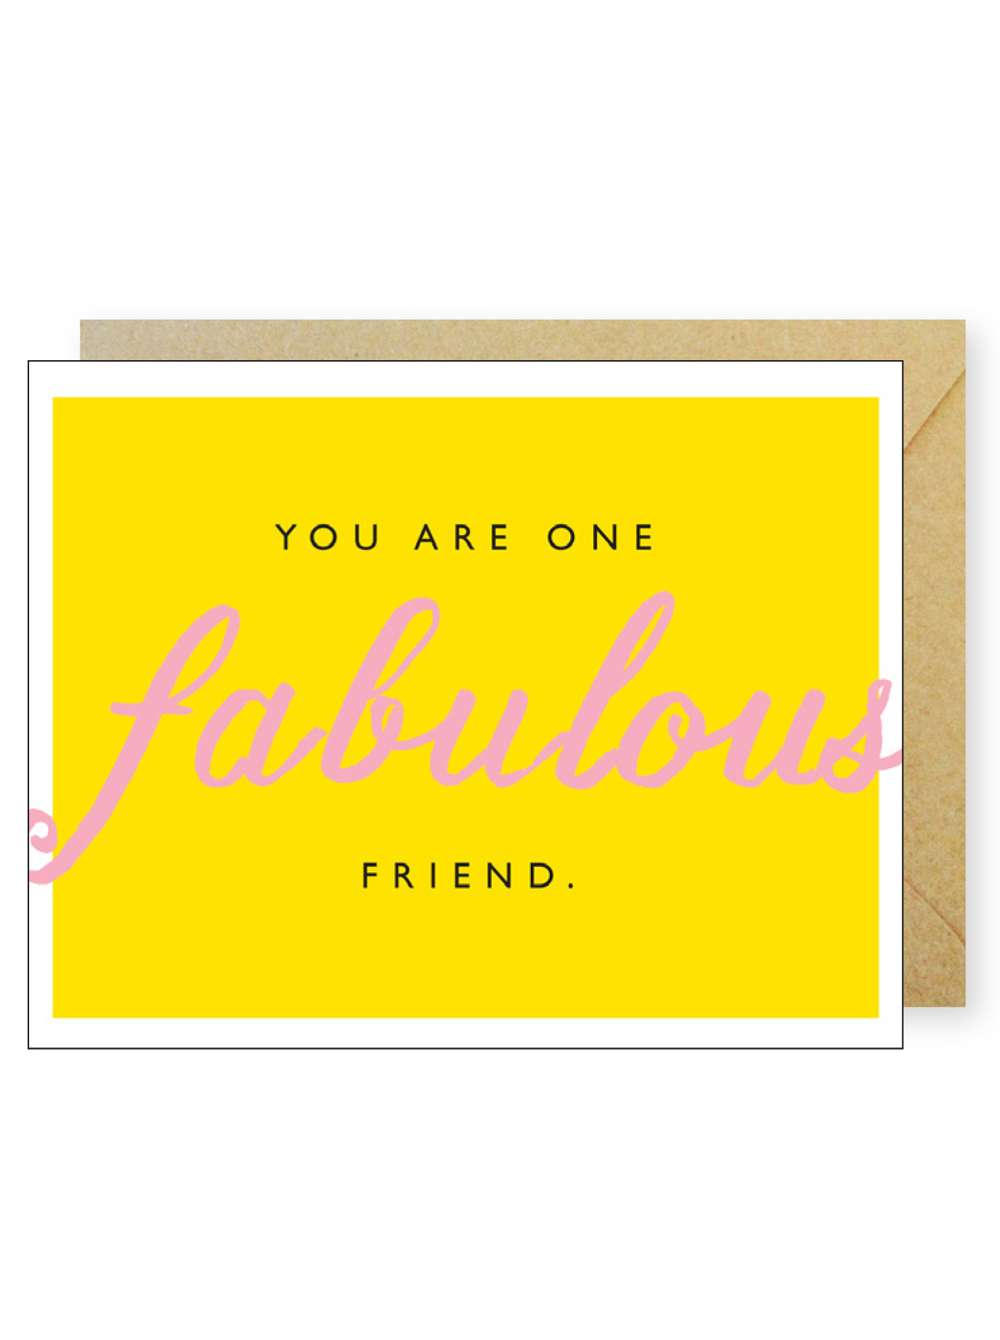 YOU ARE ONE FABULOUS FRIEND CARD Thumbnail